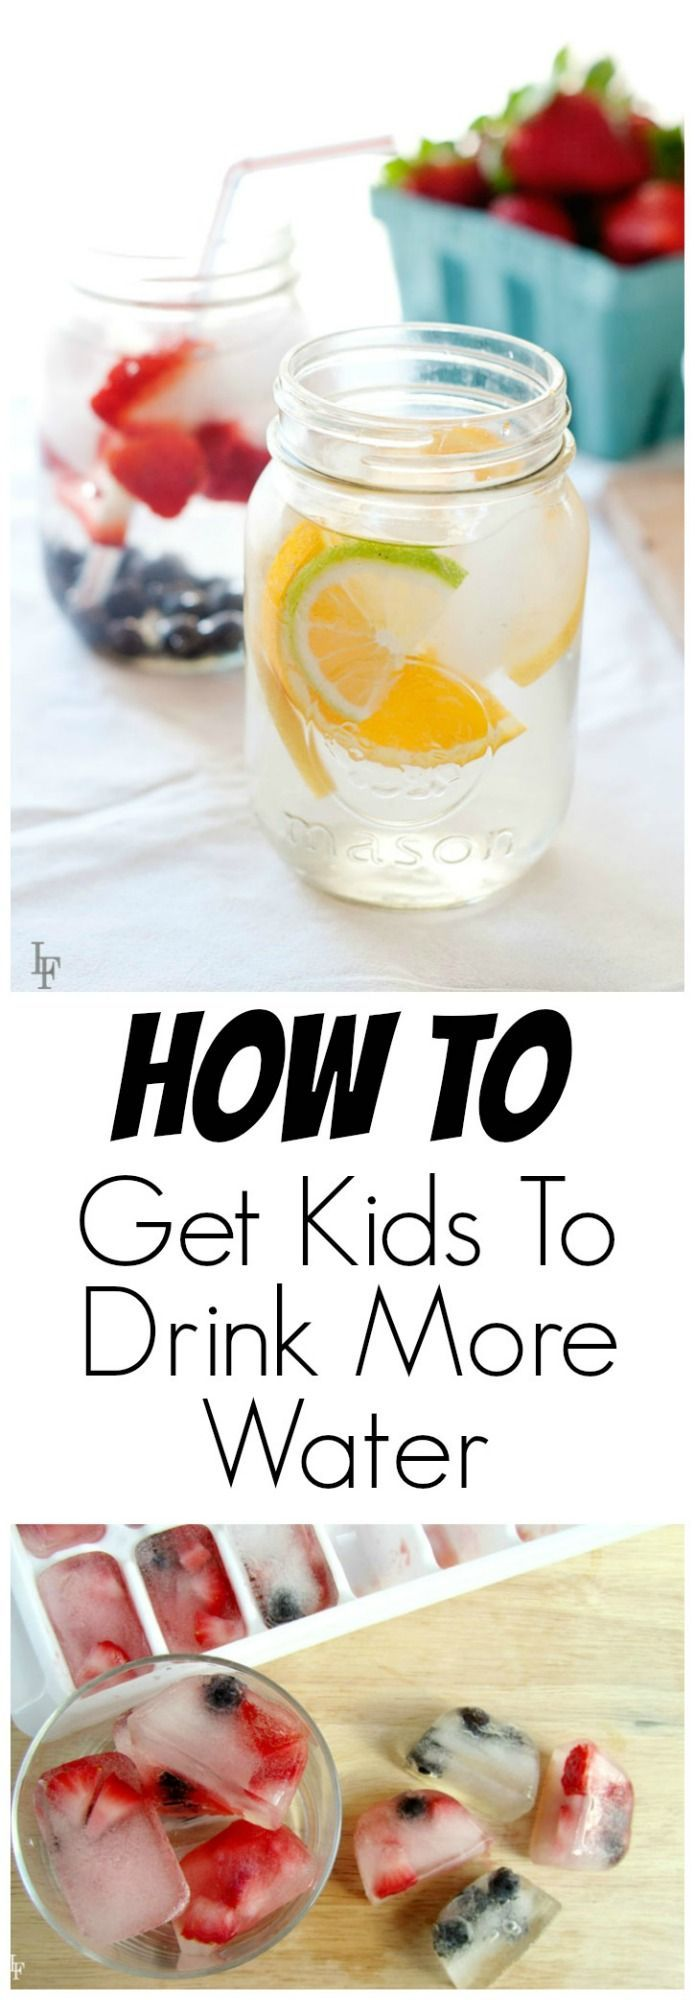 How to Get Kids to Drink More Water from LauraFuentes.com